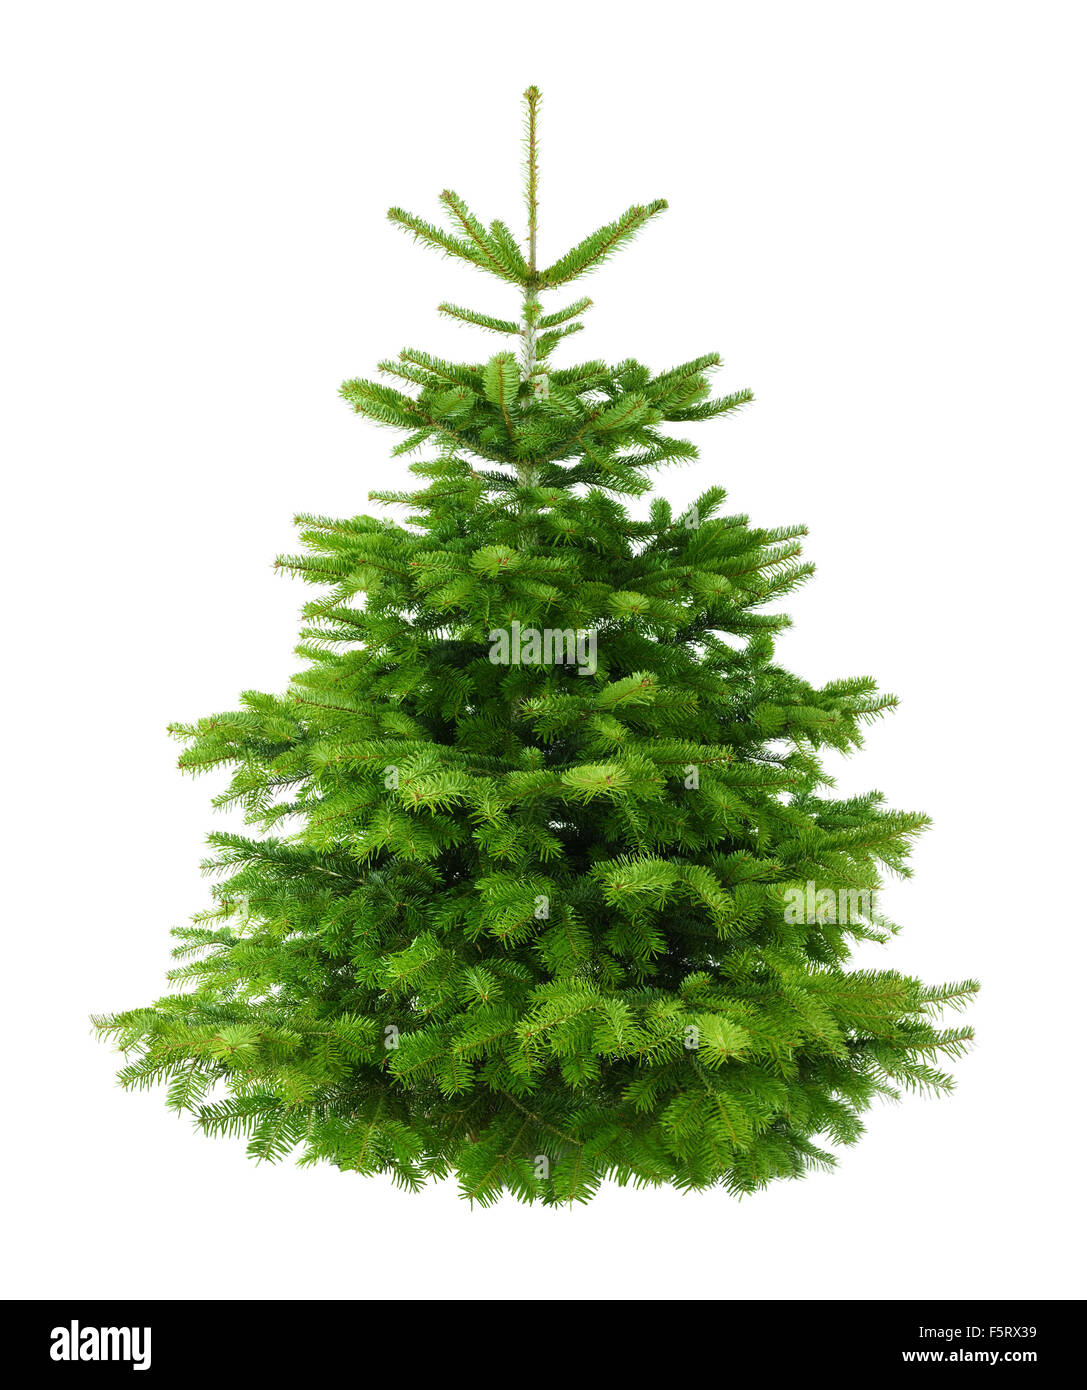 Studio shot of a fresh gorgeous Christmas tree without ornaments, isolated on white - Stock Image